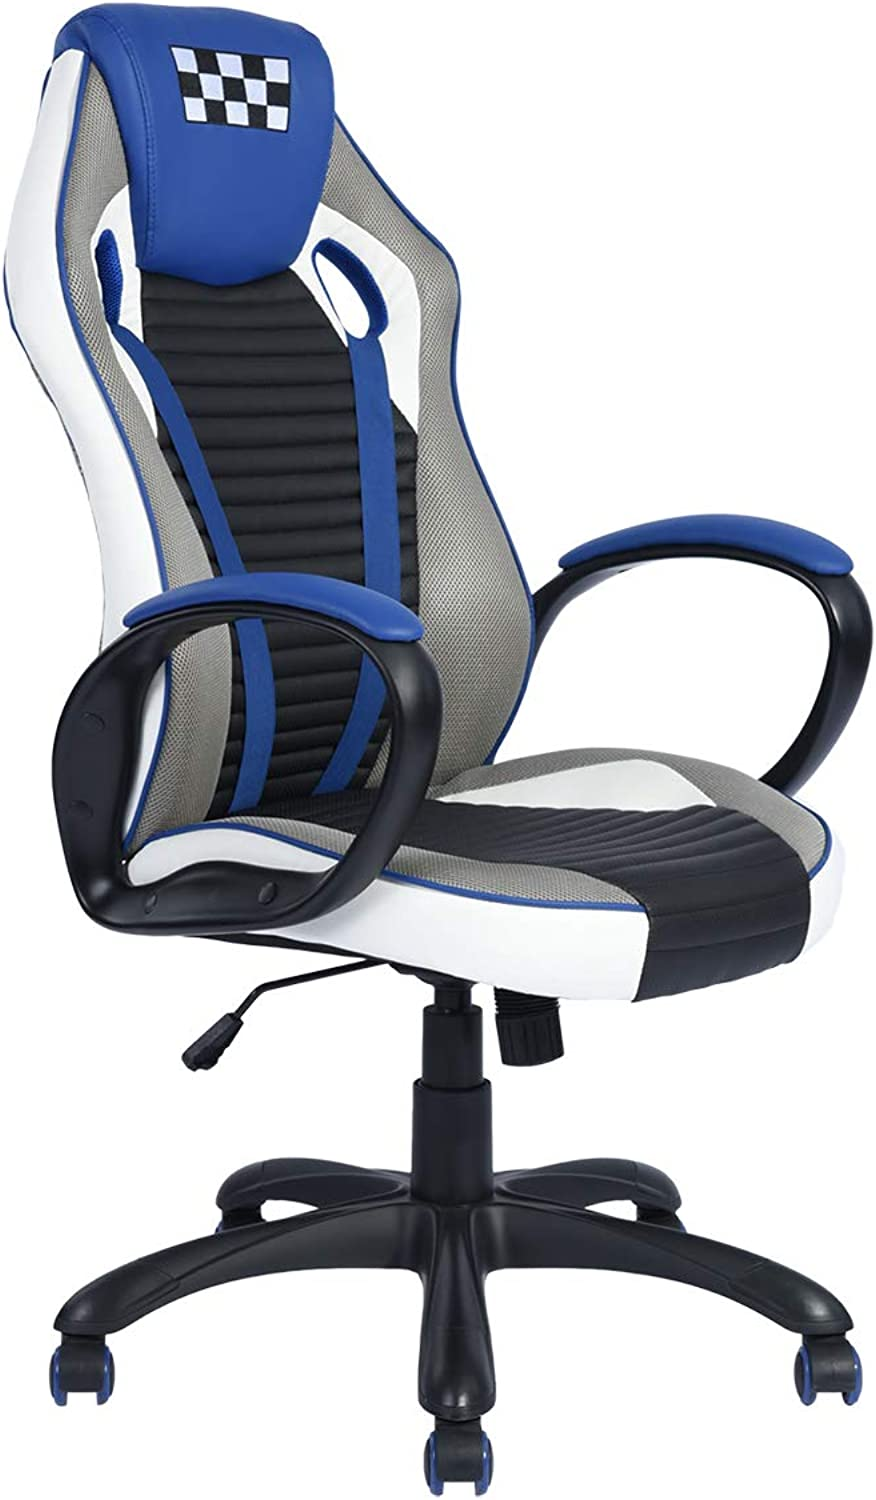 Ergonomic High Back Gaming Chair, bluee